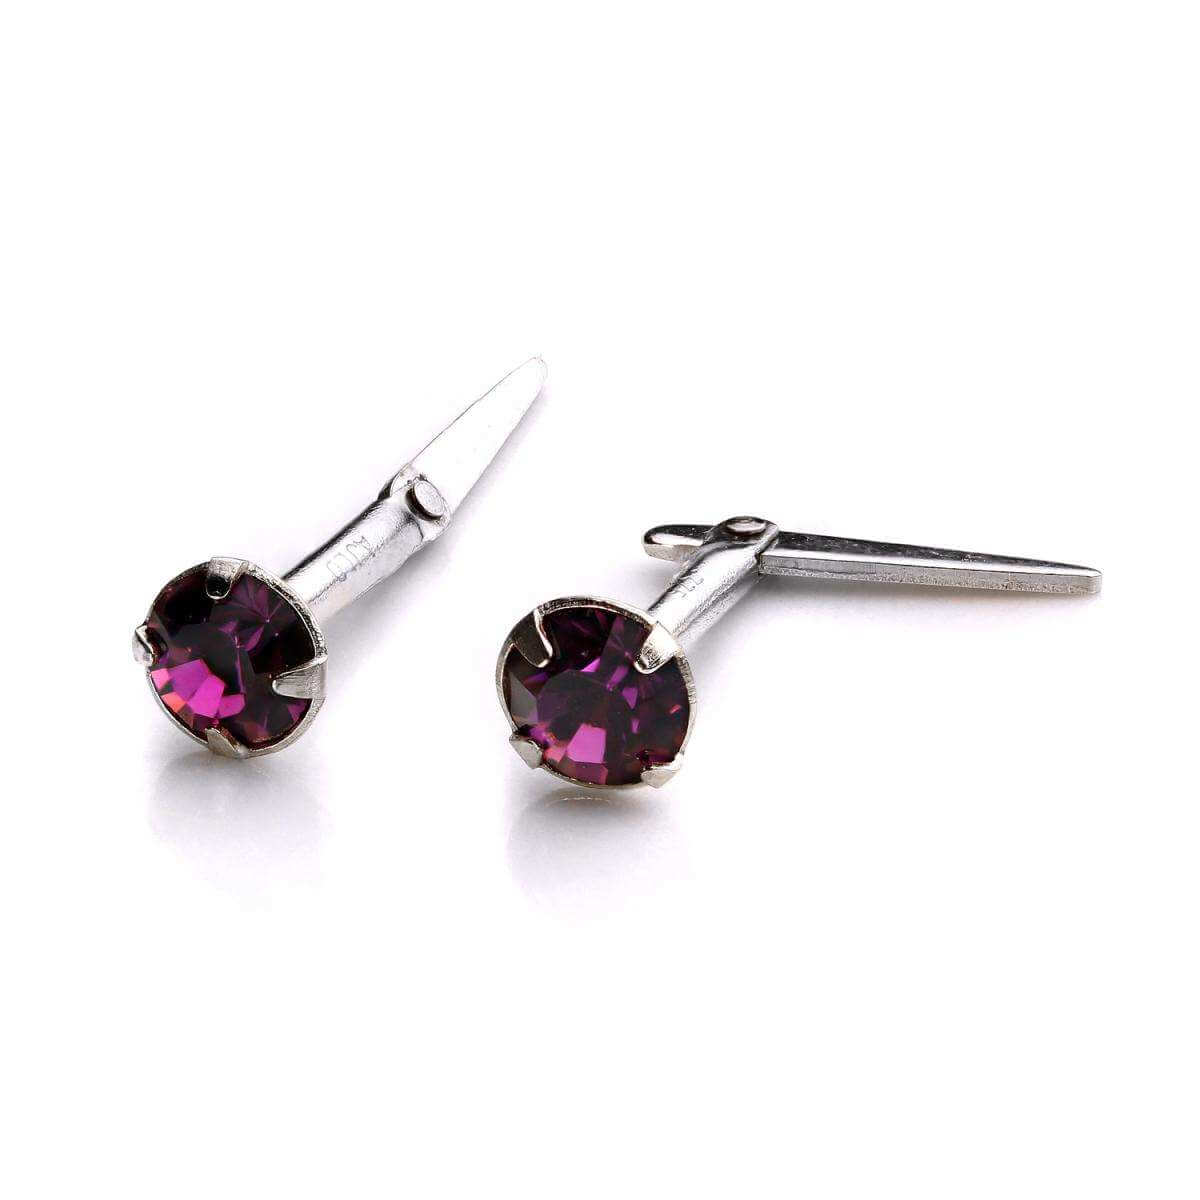 Sterling Silver Andralok Stud Earrings with 3mm Amethyst Crystal